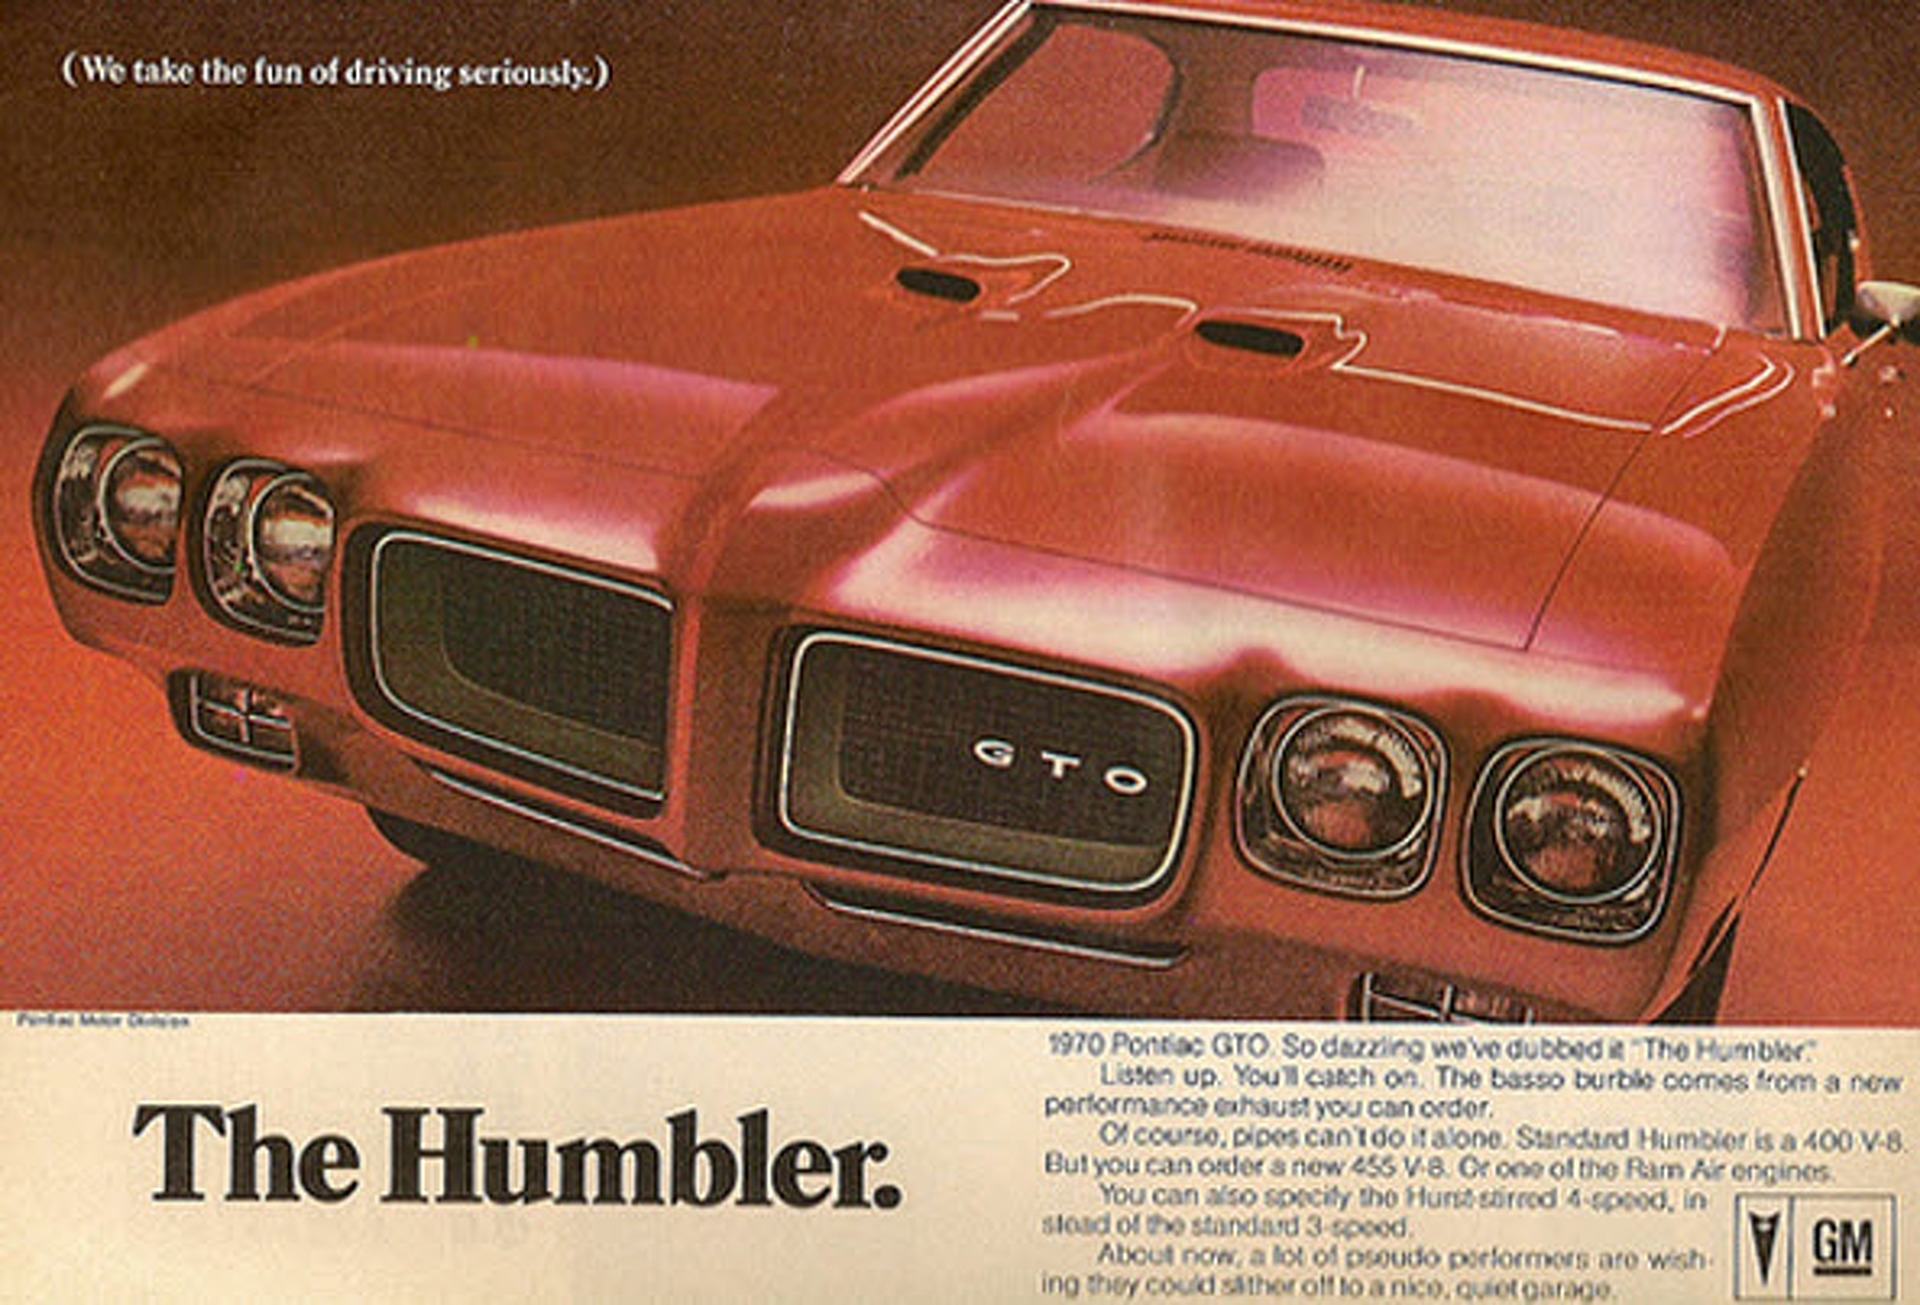 10 Muscle Car-Era Features That Need to Come Back